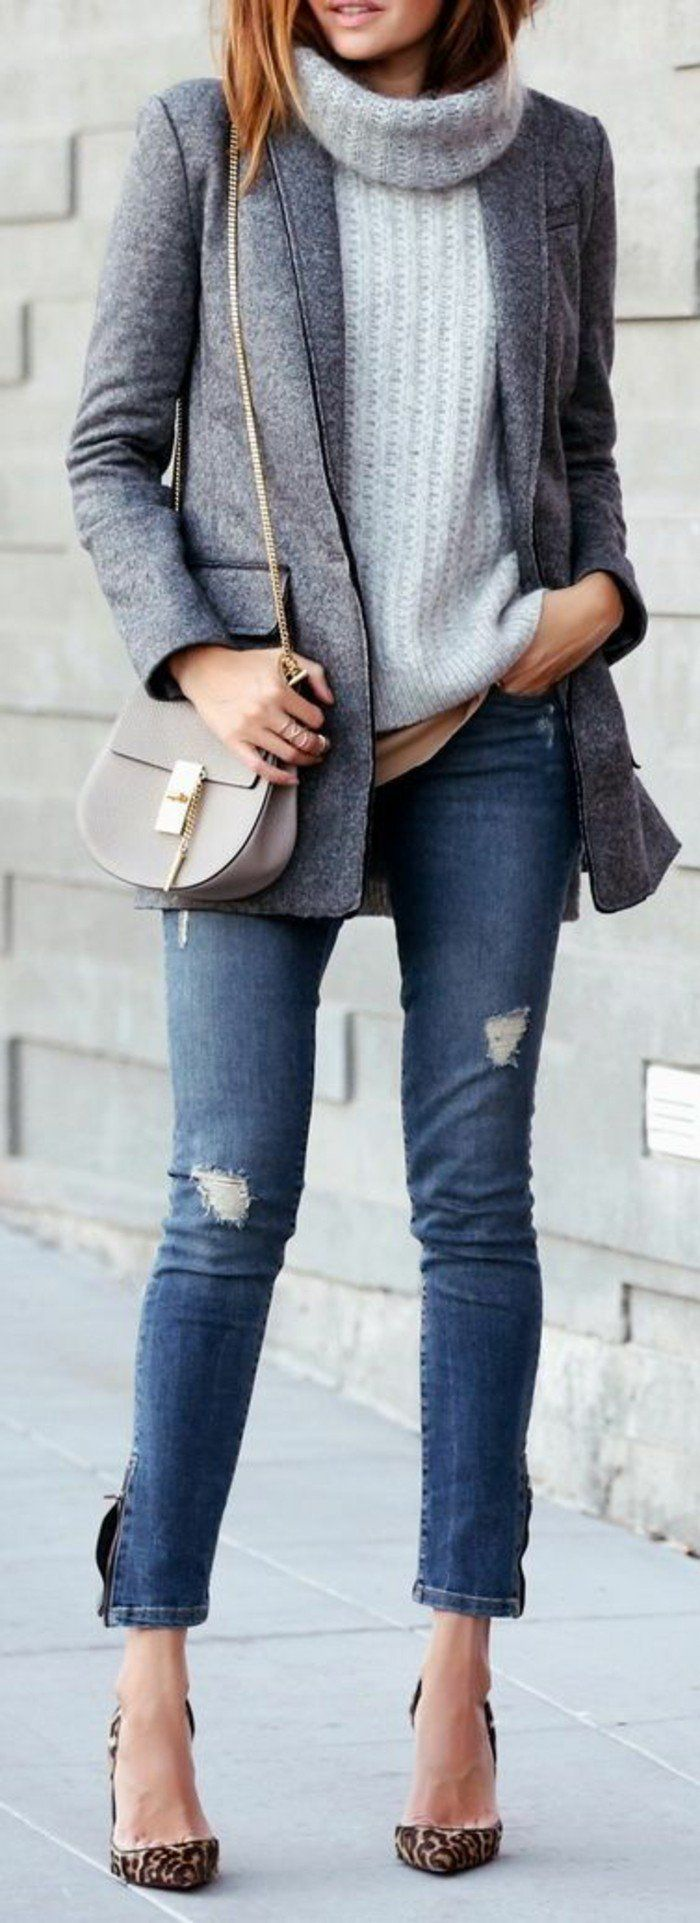 Style femme hiver 2017 - Style hiver 2017 ...